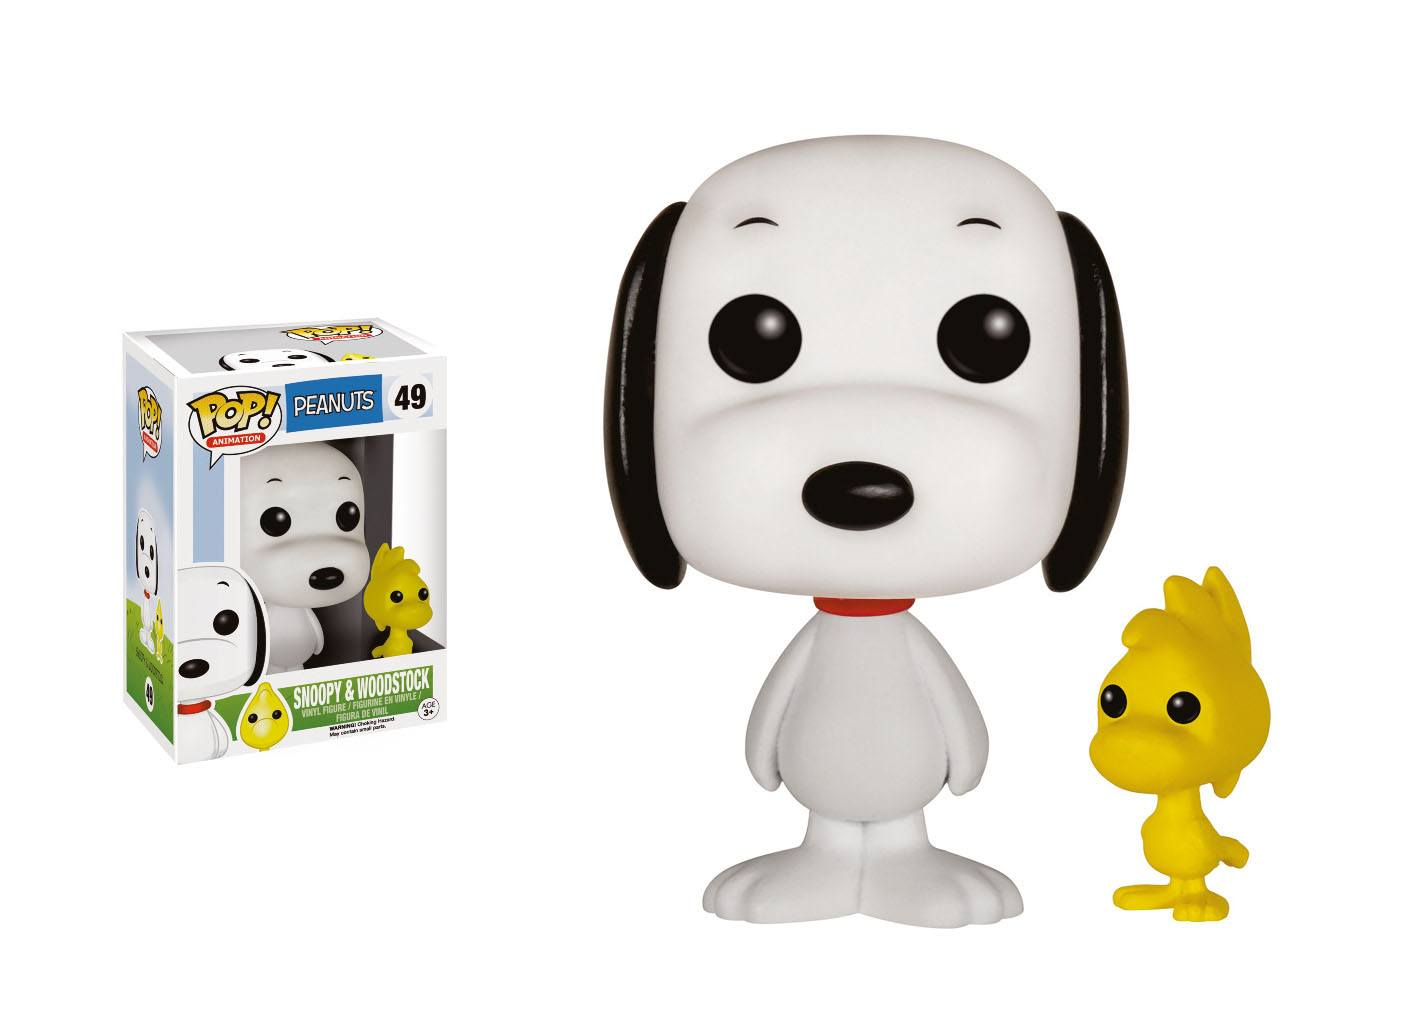 Peanuts POP! Animation Vinyl Figure Snoopy & Woodstock 9 cm